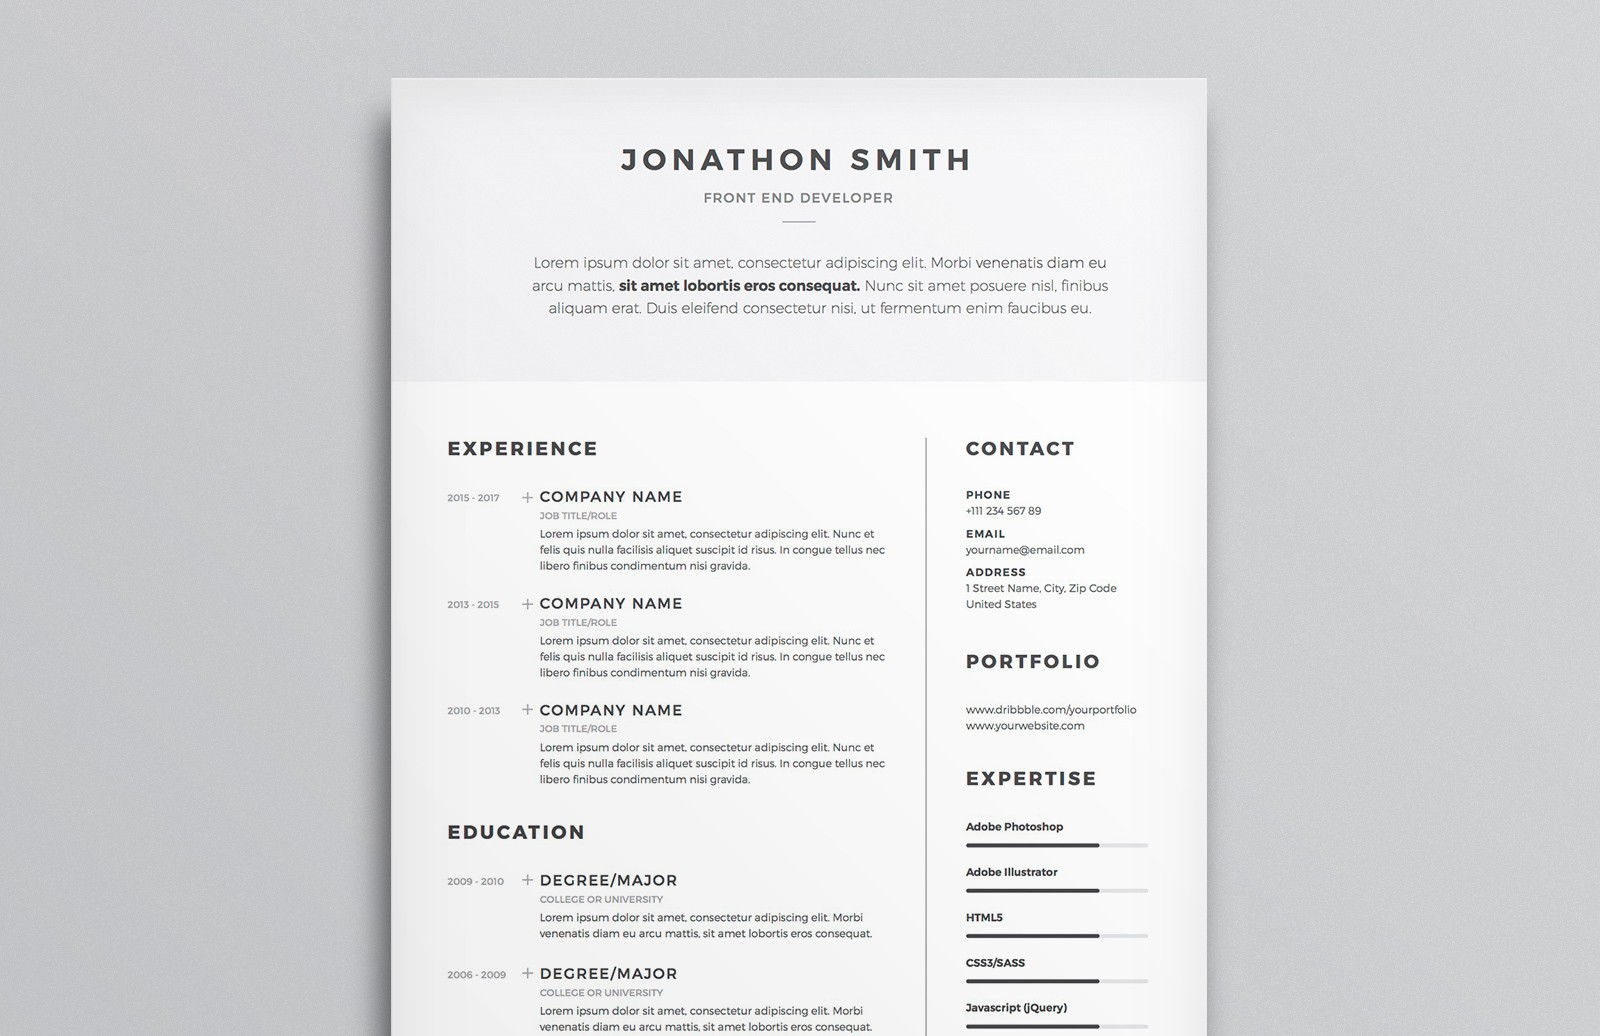 clean resume cv template medialoot large resume cv template preview 1a